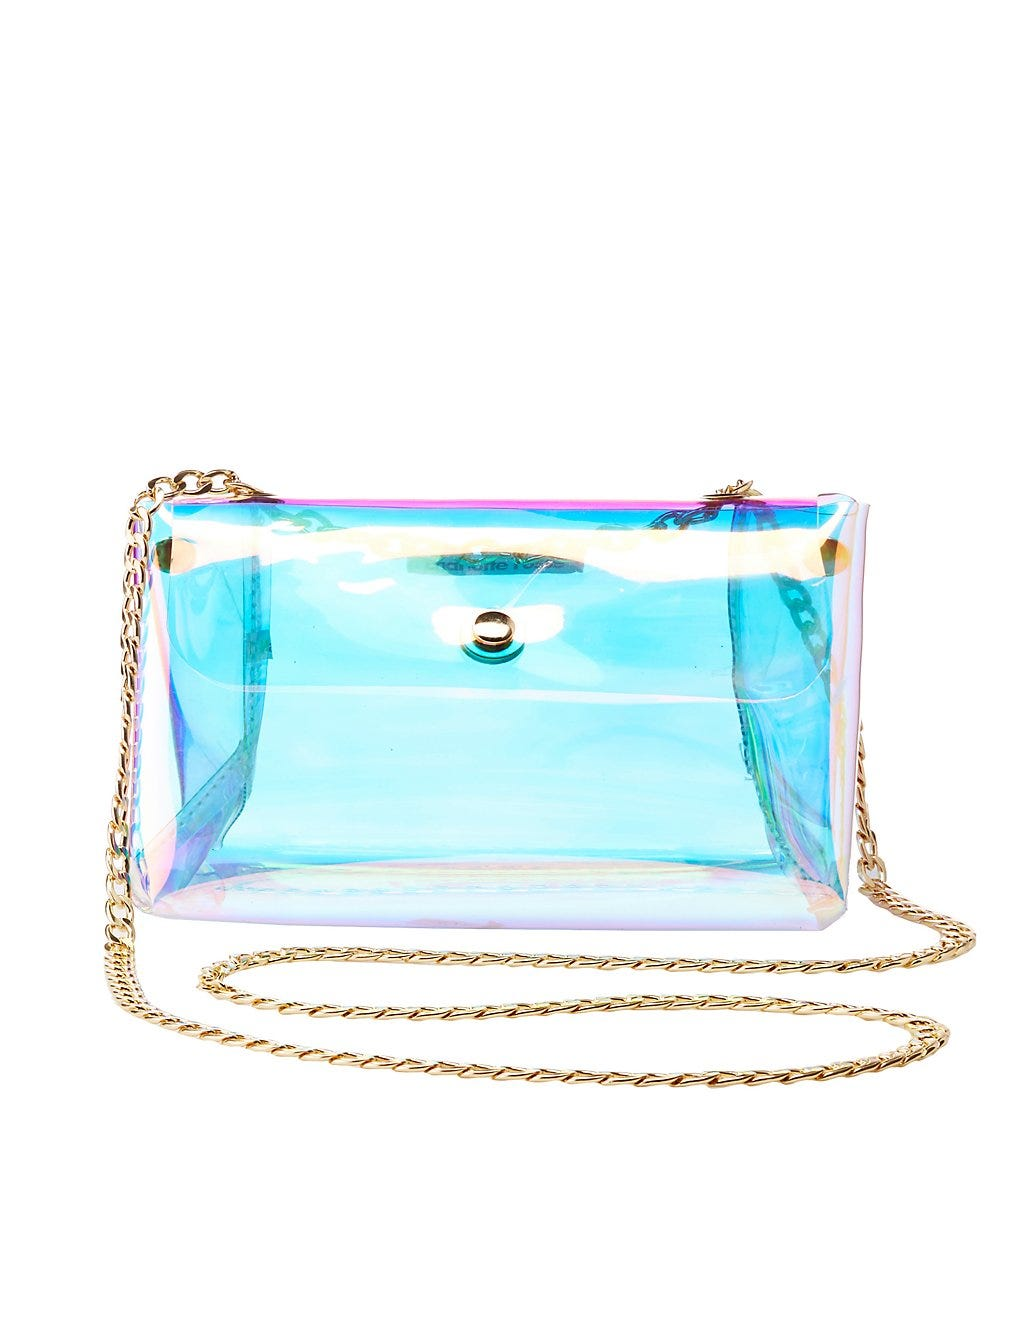 Best Clear Purse And Handbag Trend During Fashion Week c5d46f396238f